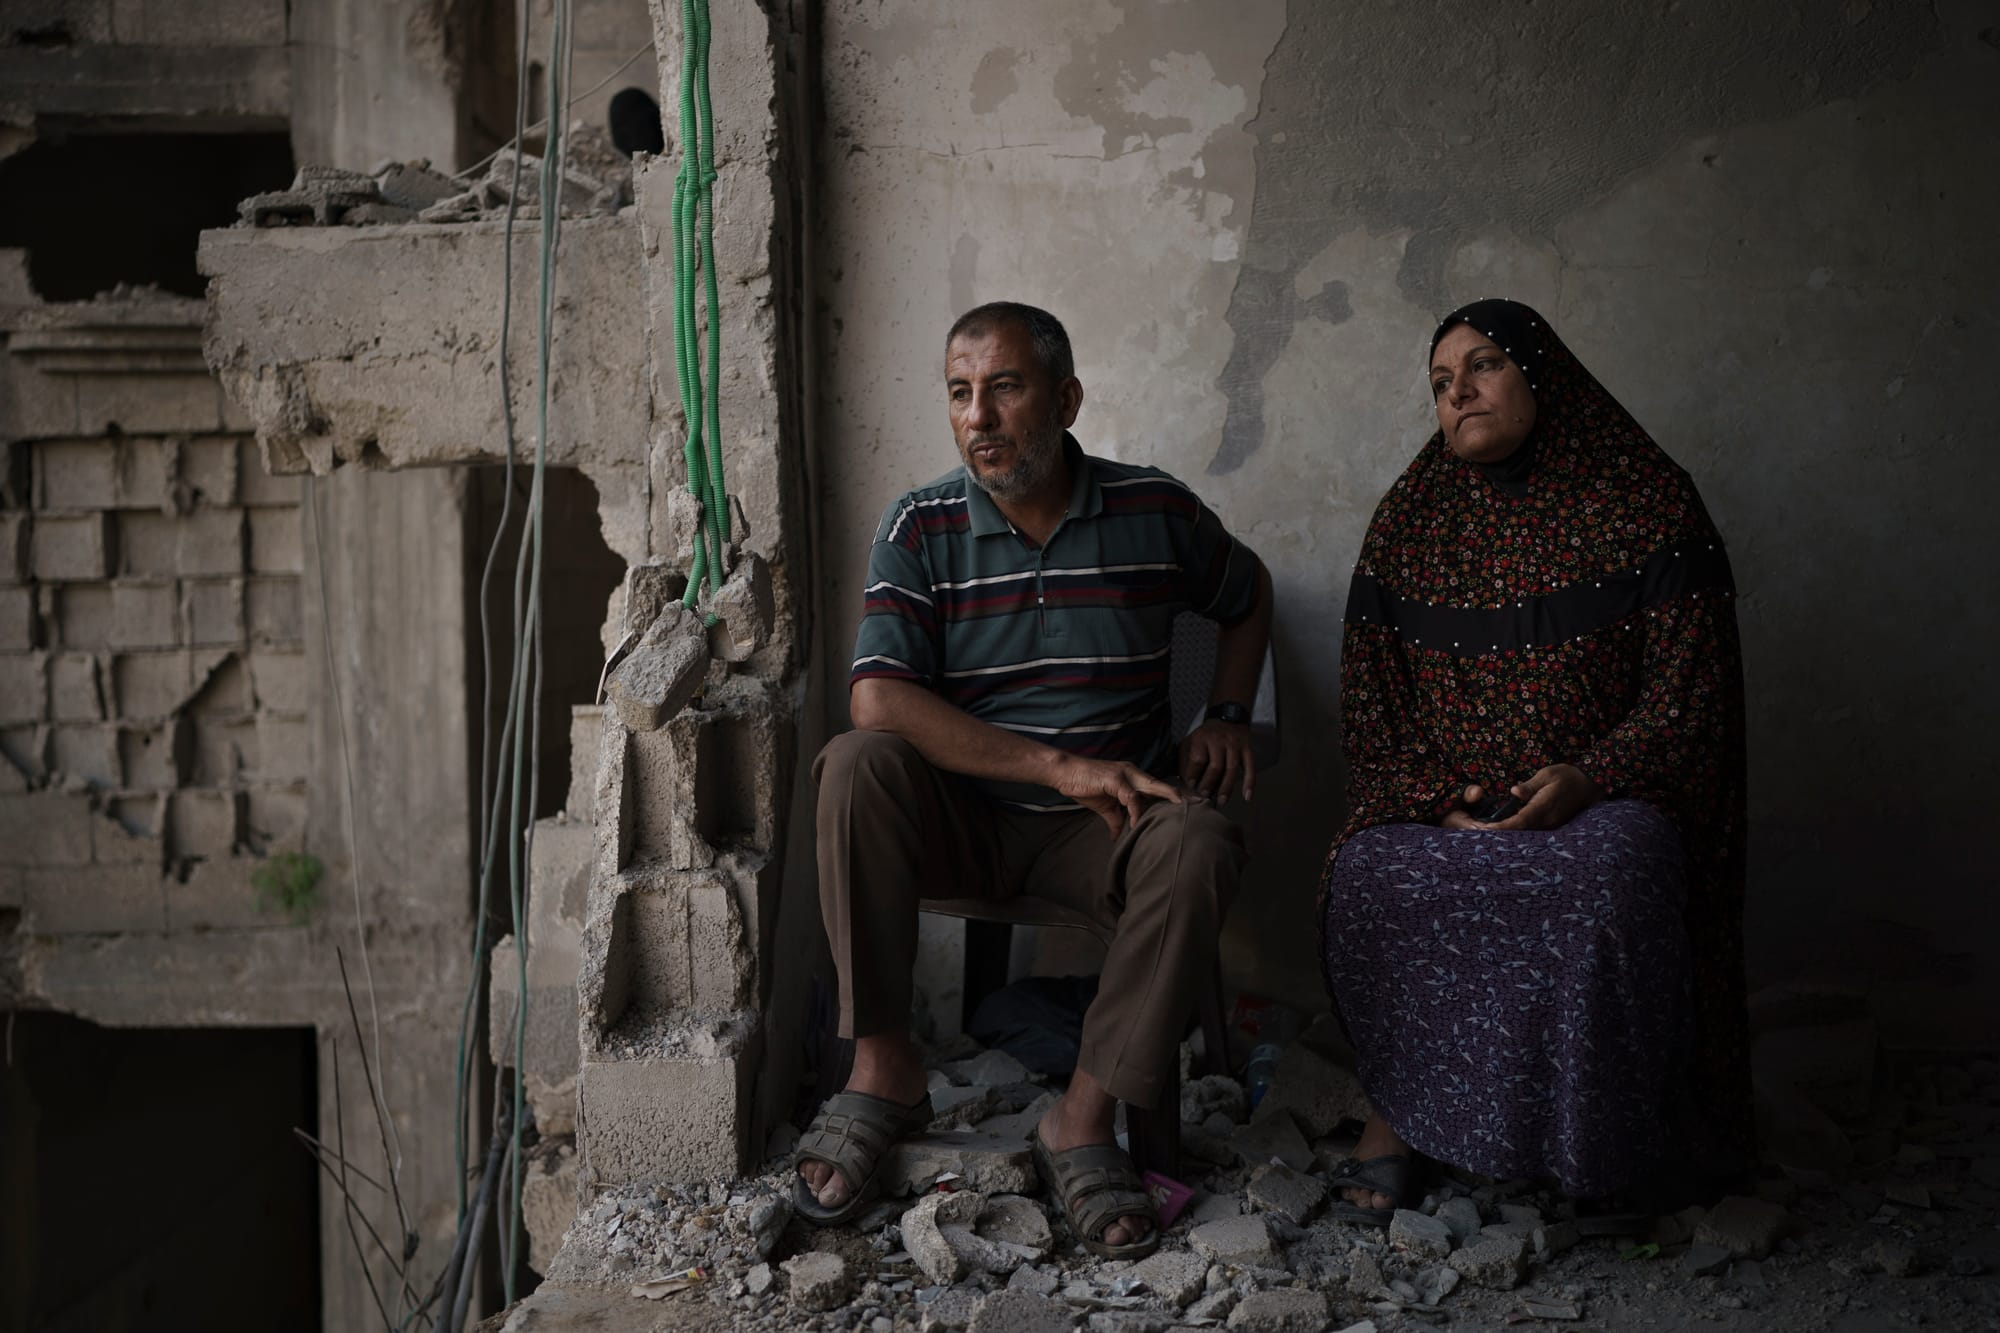 A man and a woman, Zaki and Jawaher Nassir, sit inside their home that had been heavily damaged by airstrikes in Beit Hanounon in the northern Gaza Strip.